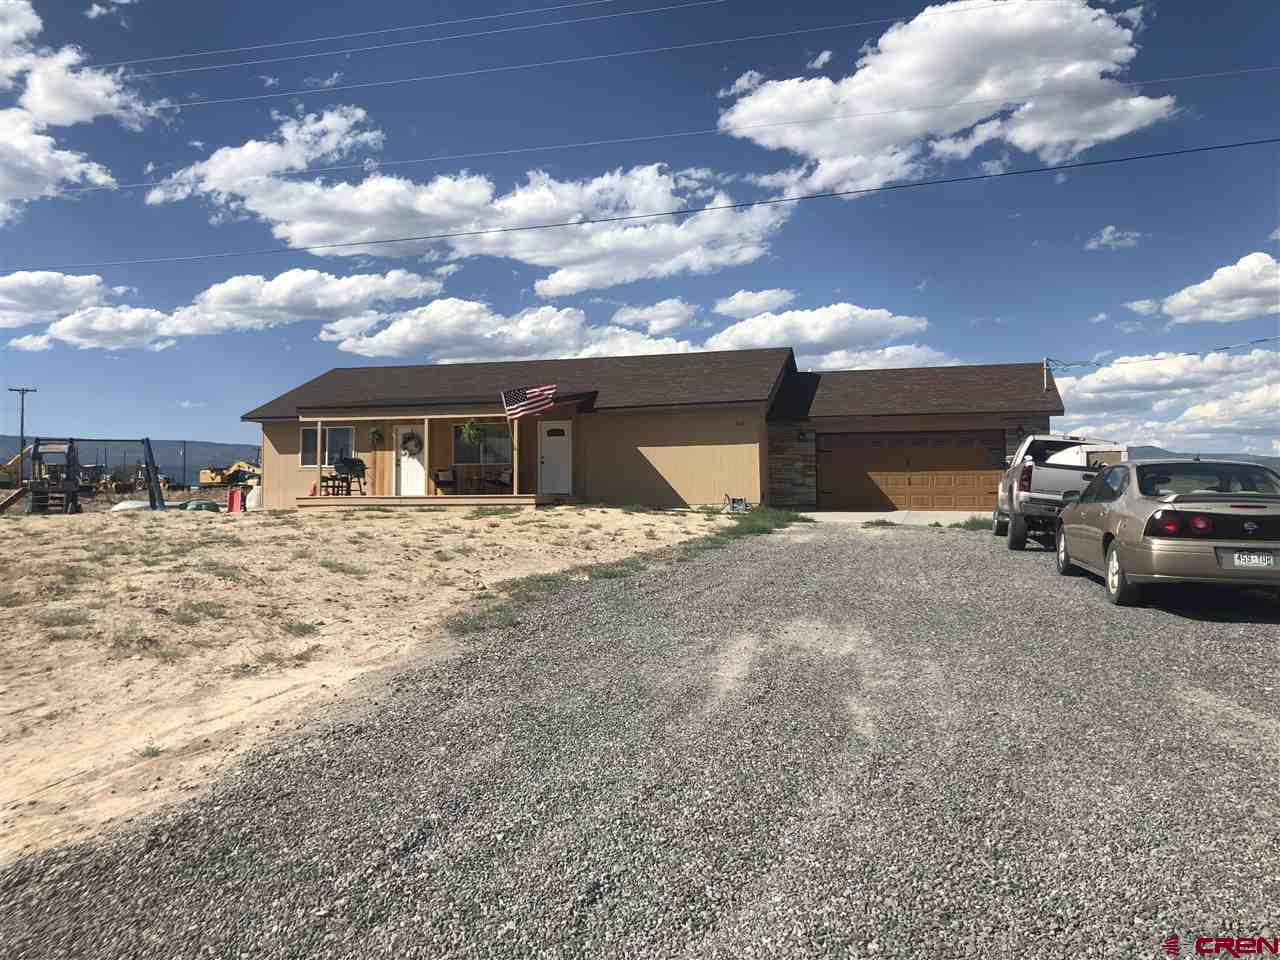 New home that was built in 2019! 3 bedroom, 2 full bath home that is still like new and clean and ready to move into. Good sized bedrooms. Natural Gas forced air and central A/C. Gas and 220v are ran to the kitchen stove and water heater giving you the two options. Beautiful Panoramic views of the San Juans, West Elks, Grand Mesa, and the entire Valley below. Great Central Delta County location! Plenty of parking, no covenants or HOA. Currently not landscaped which allows for your own personal touch and design.